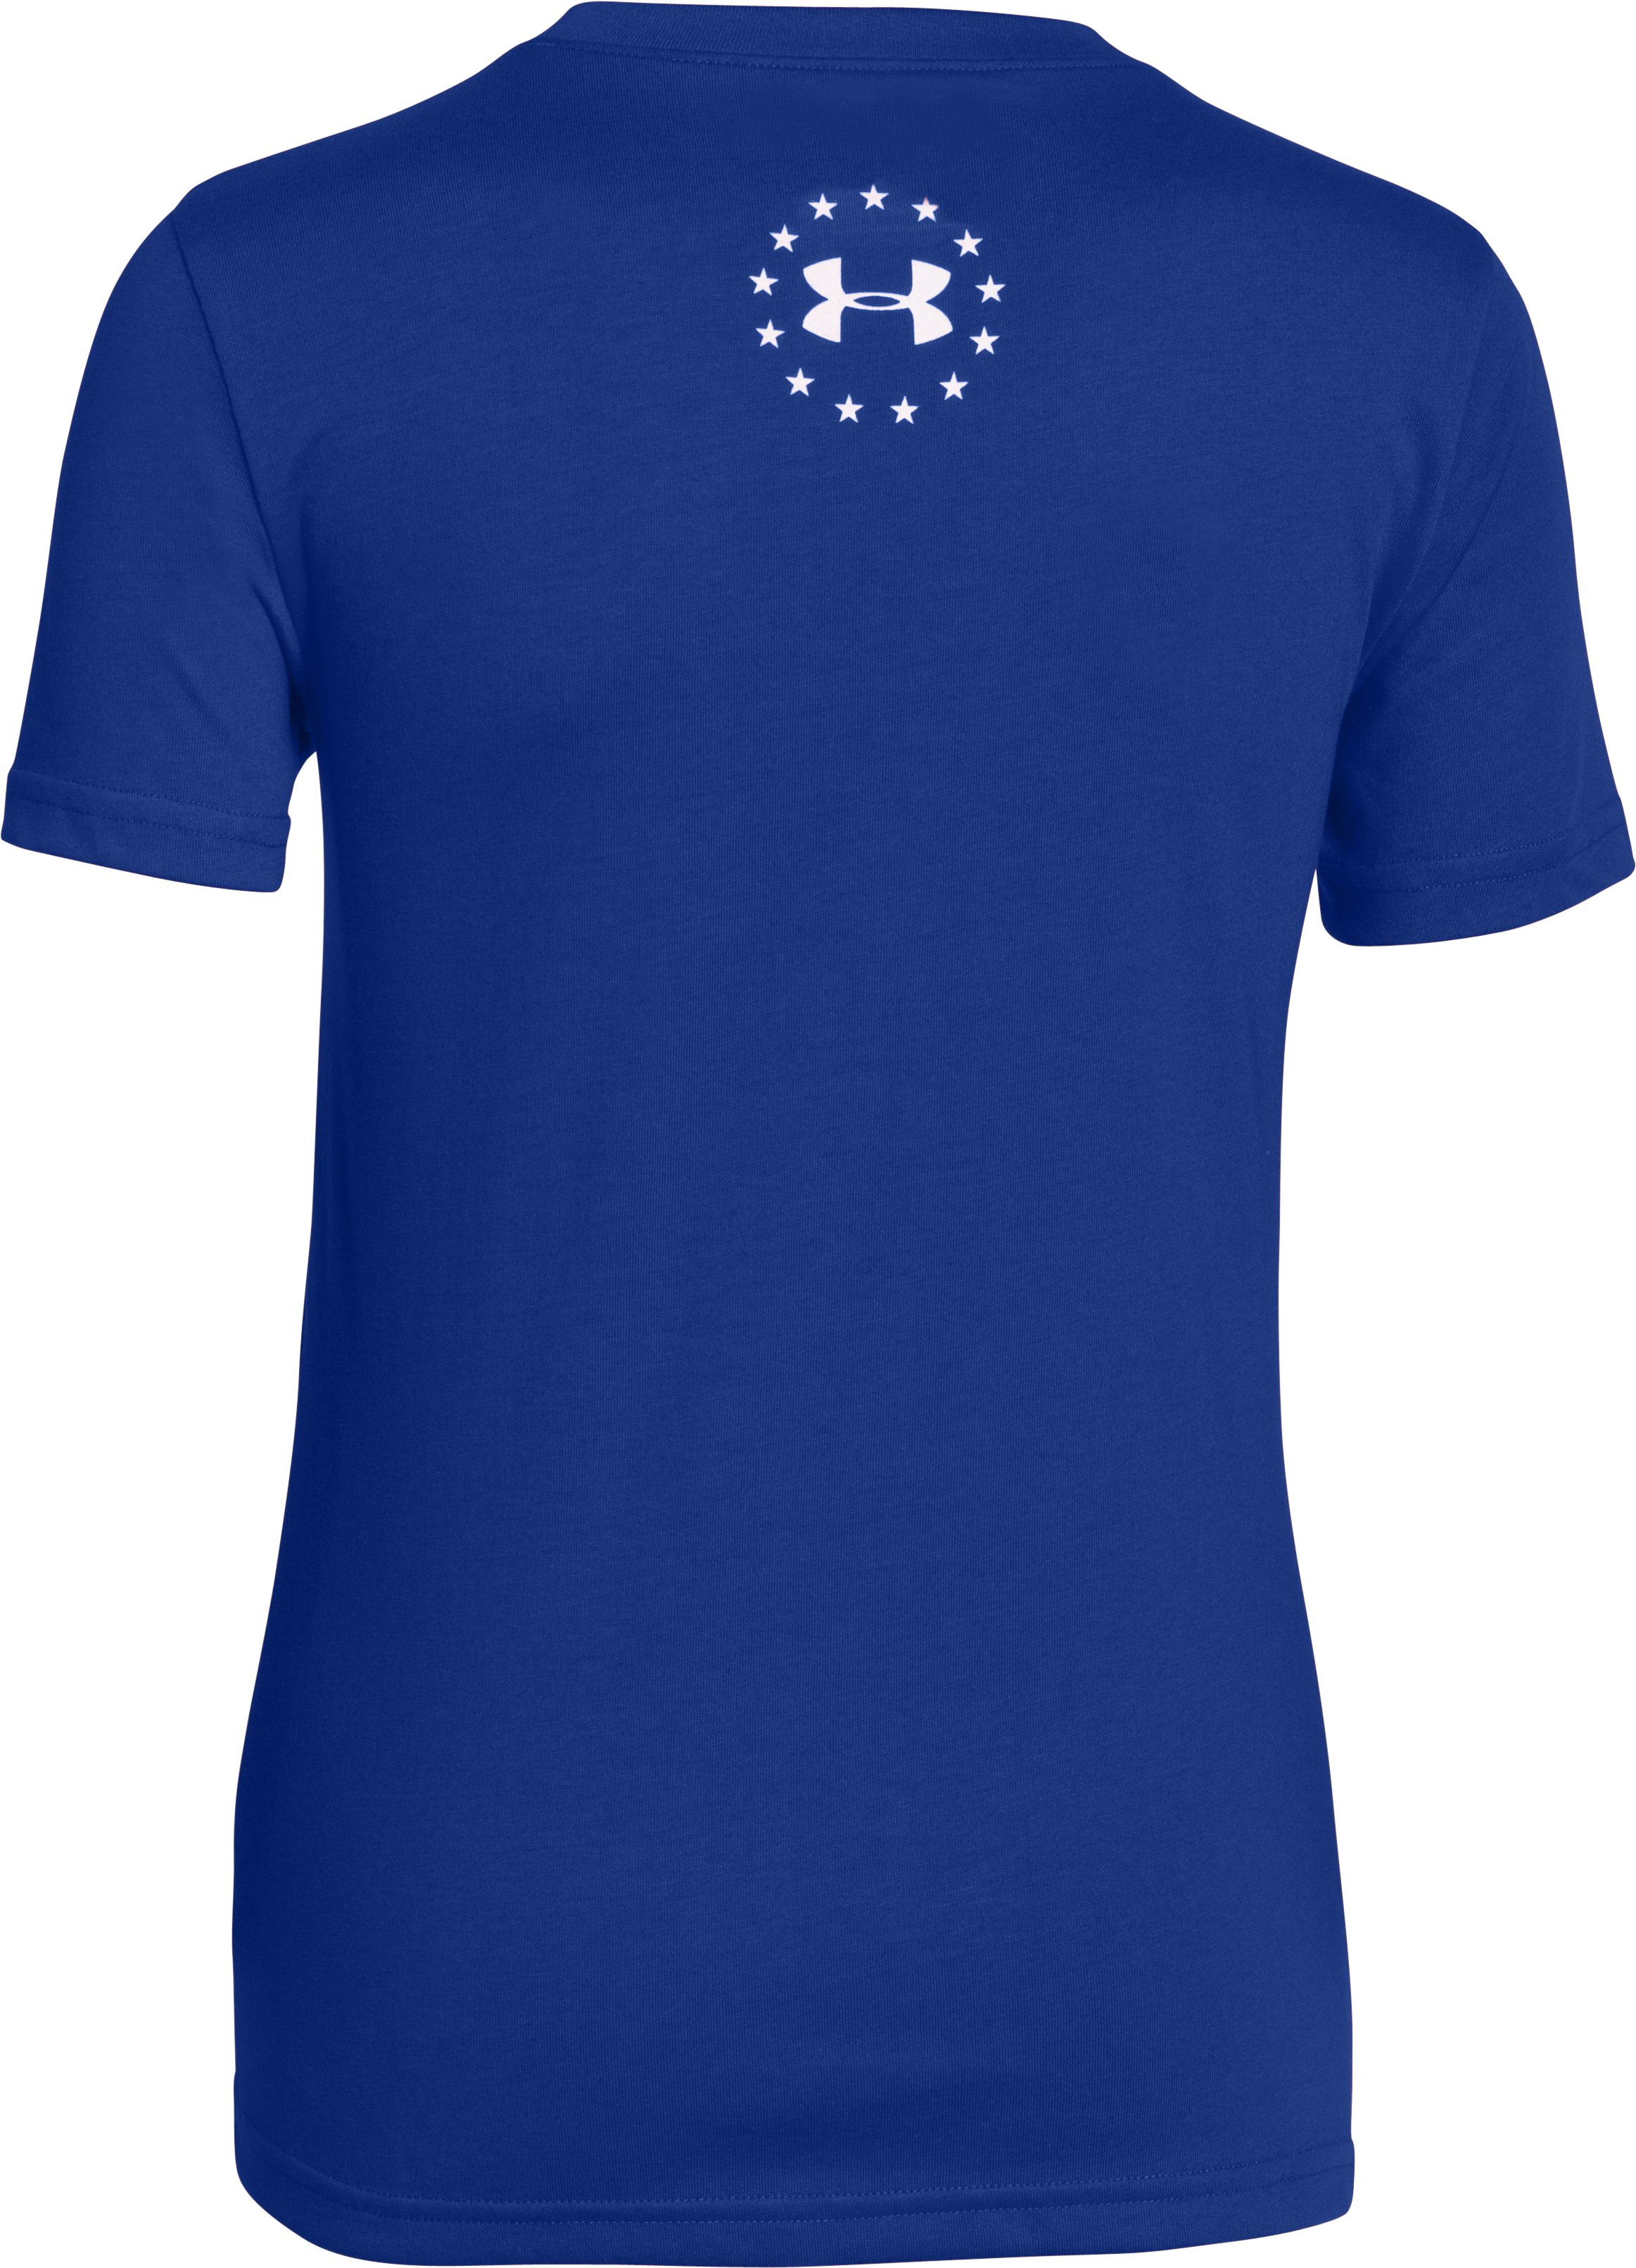 Boys' UA Big Flag Logo T-Shirt, Royal